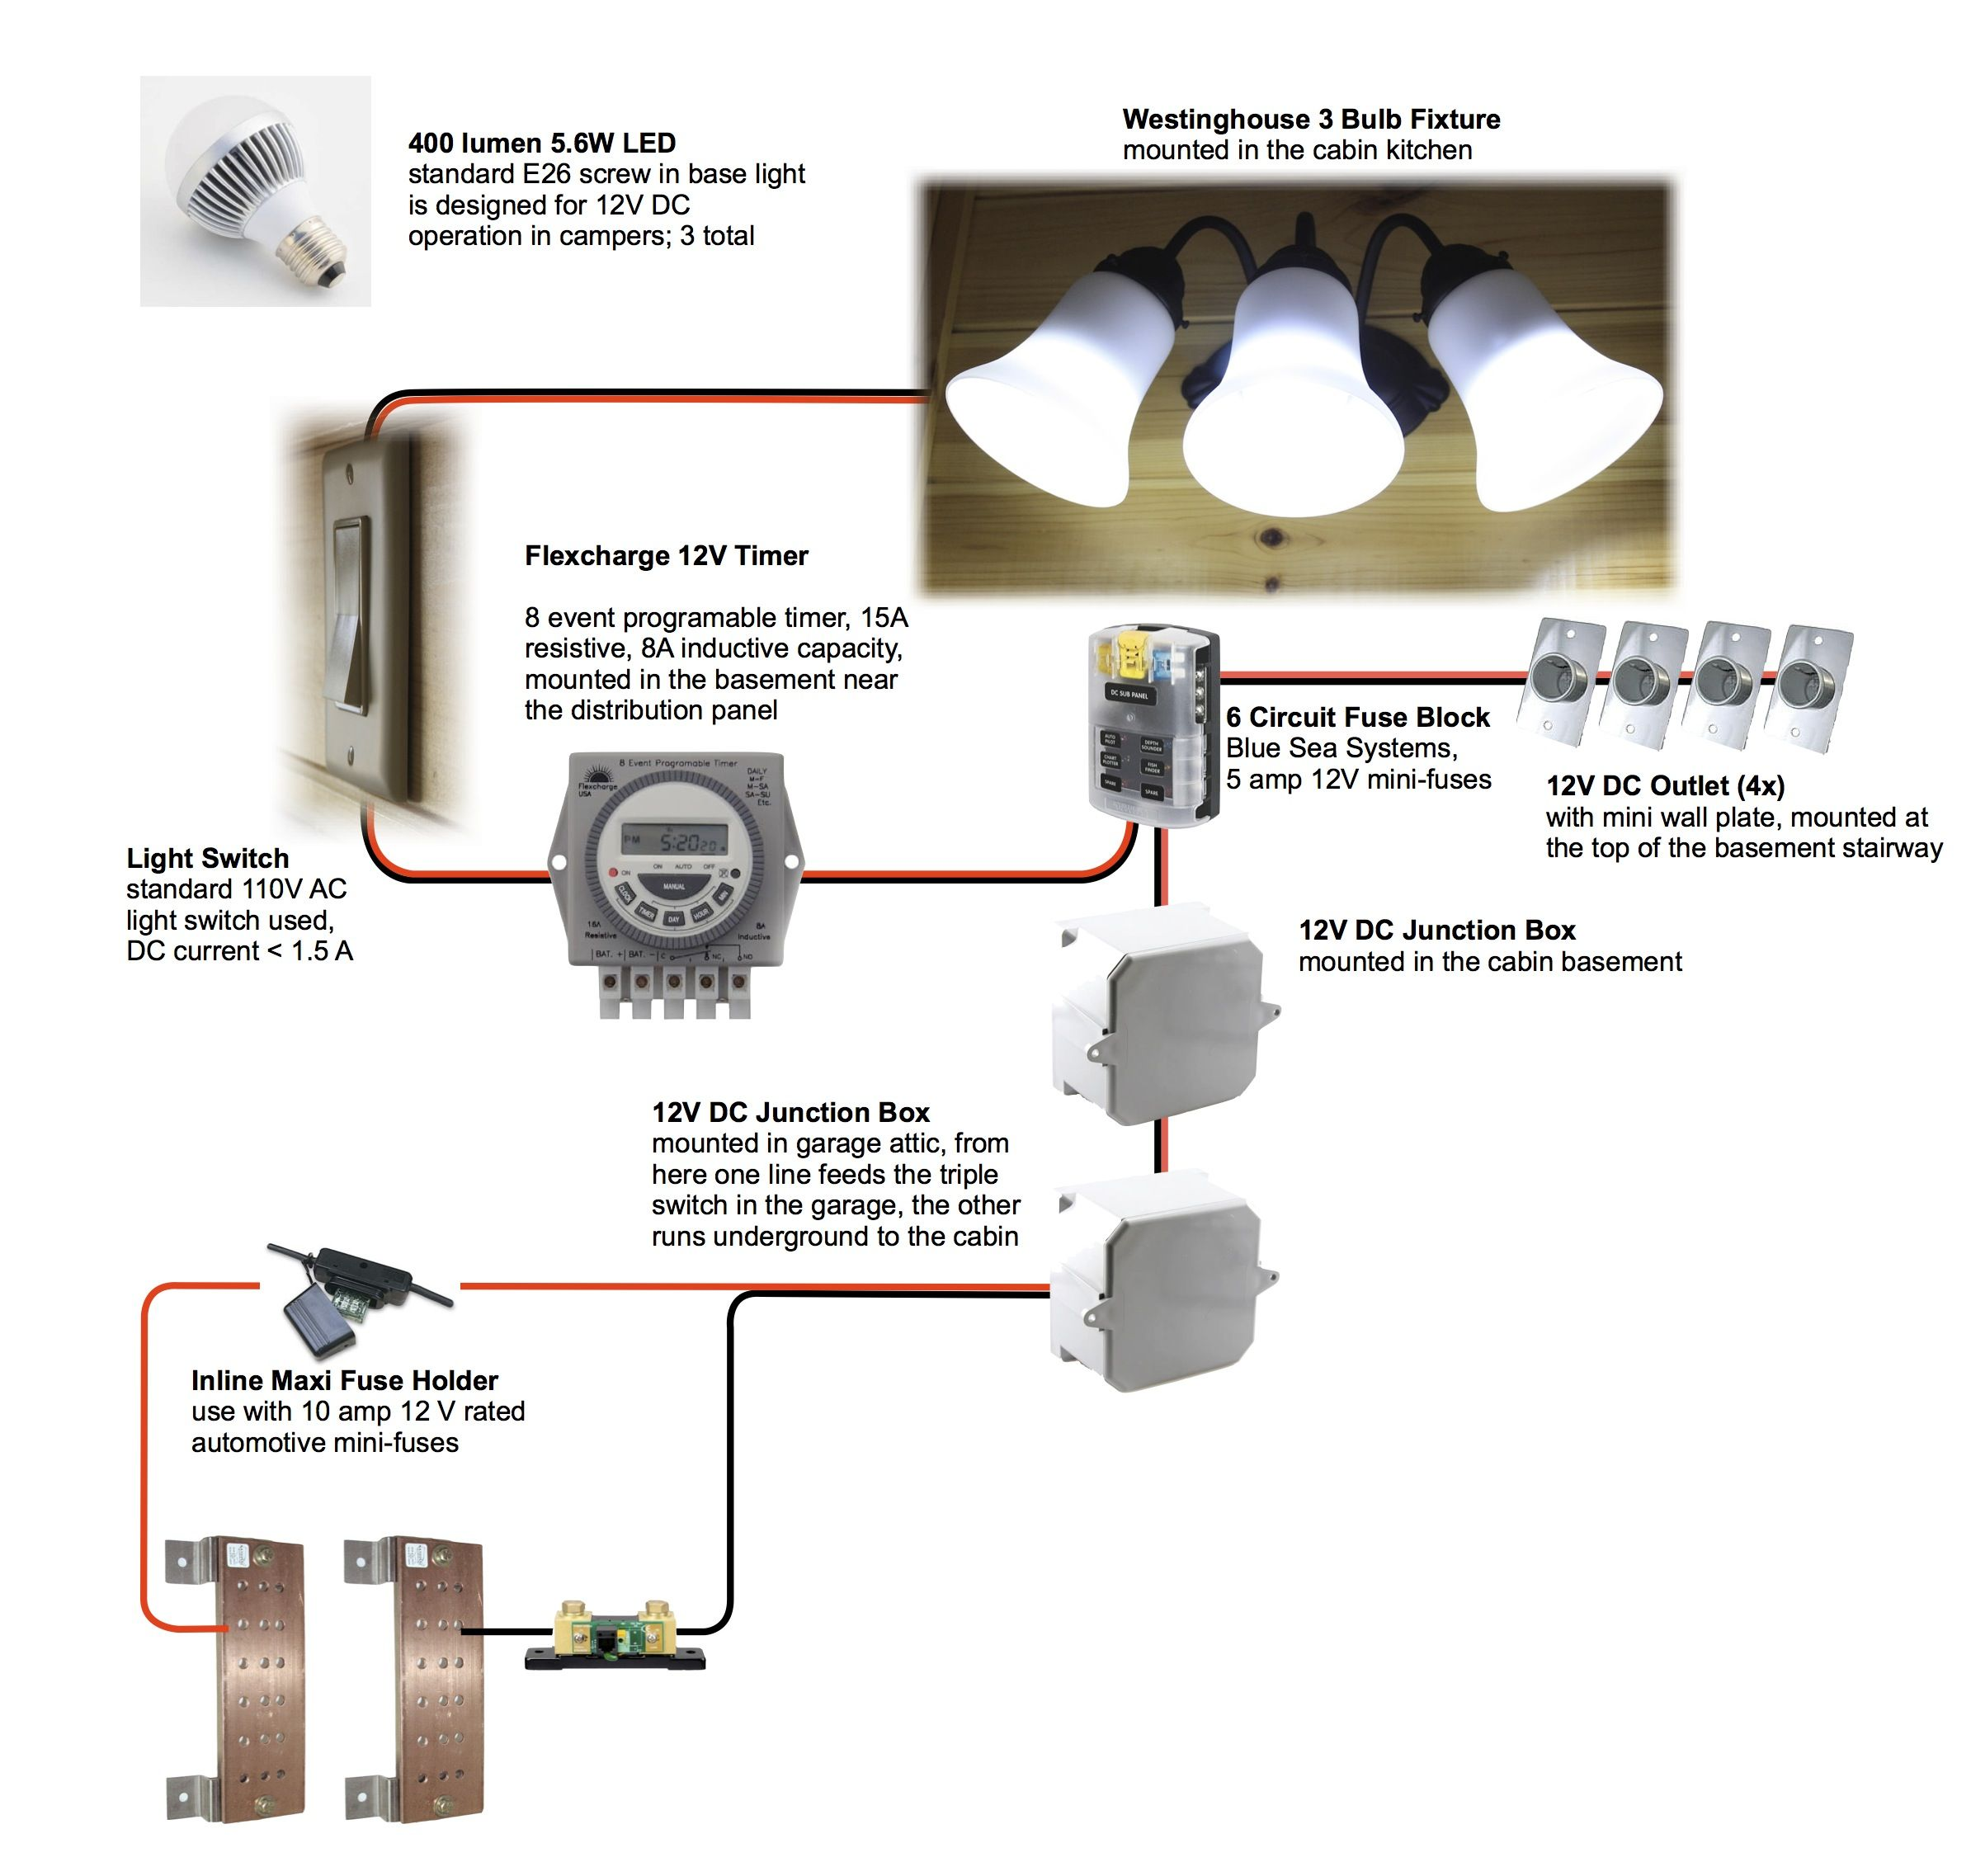 Led Light Fixture Wiring Diagram from i.pinimg.com